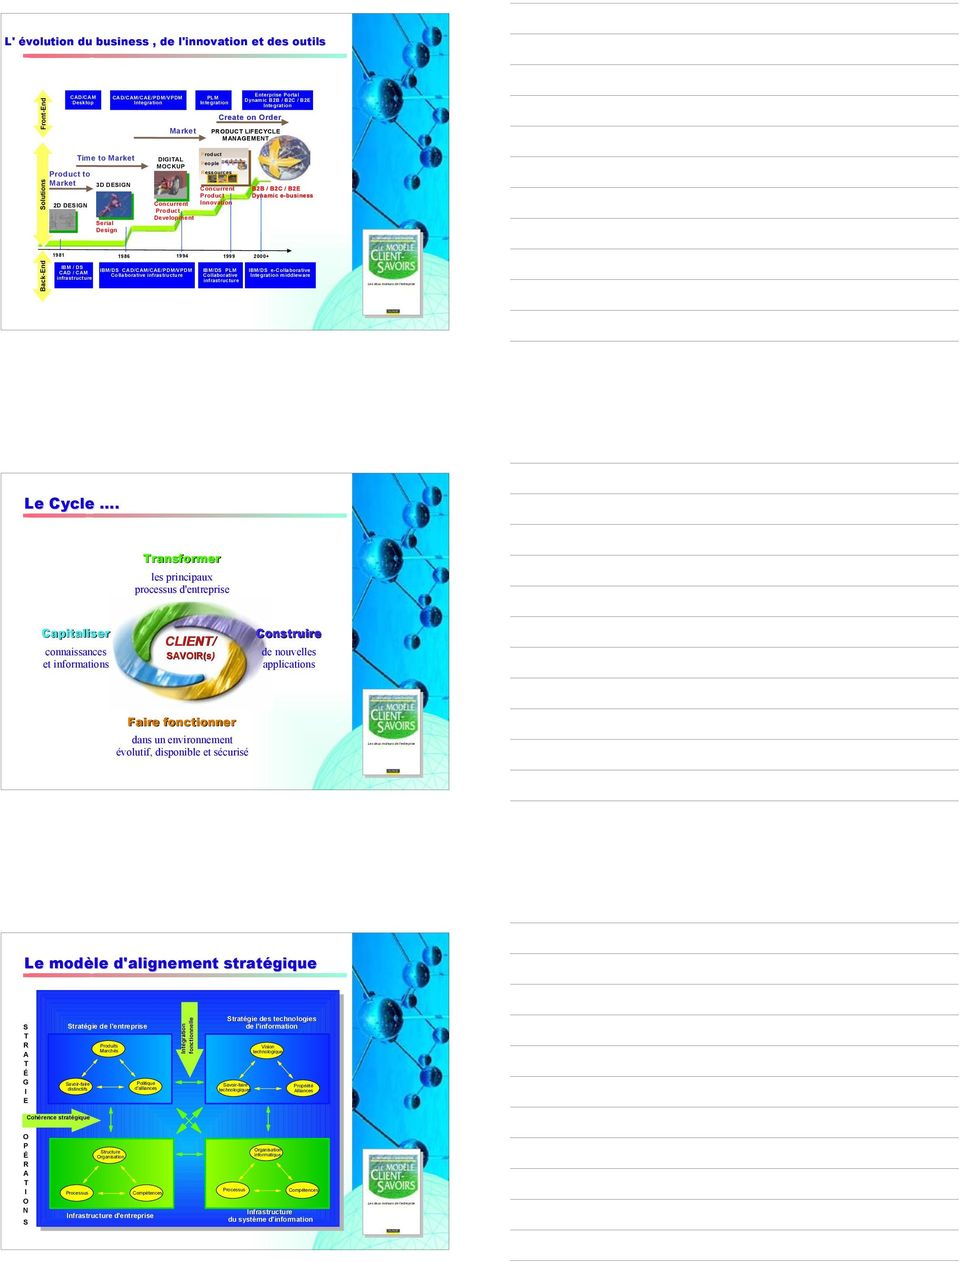 Product Development B2B / B2C / B2E Dynamic e-business 1981 1986 1994 1999 2000+ Back-End IBM / DS CAD / CAM infrastructure IBM/DS CAD/CAM/CAE/PDM/VPDM Collaborative infrastructure IBM/DS PLM